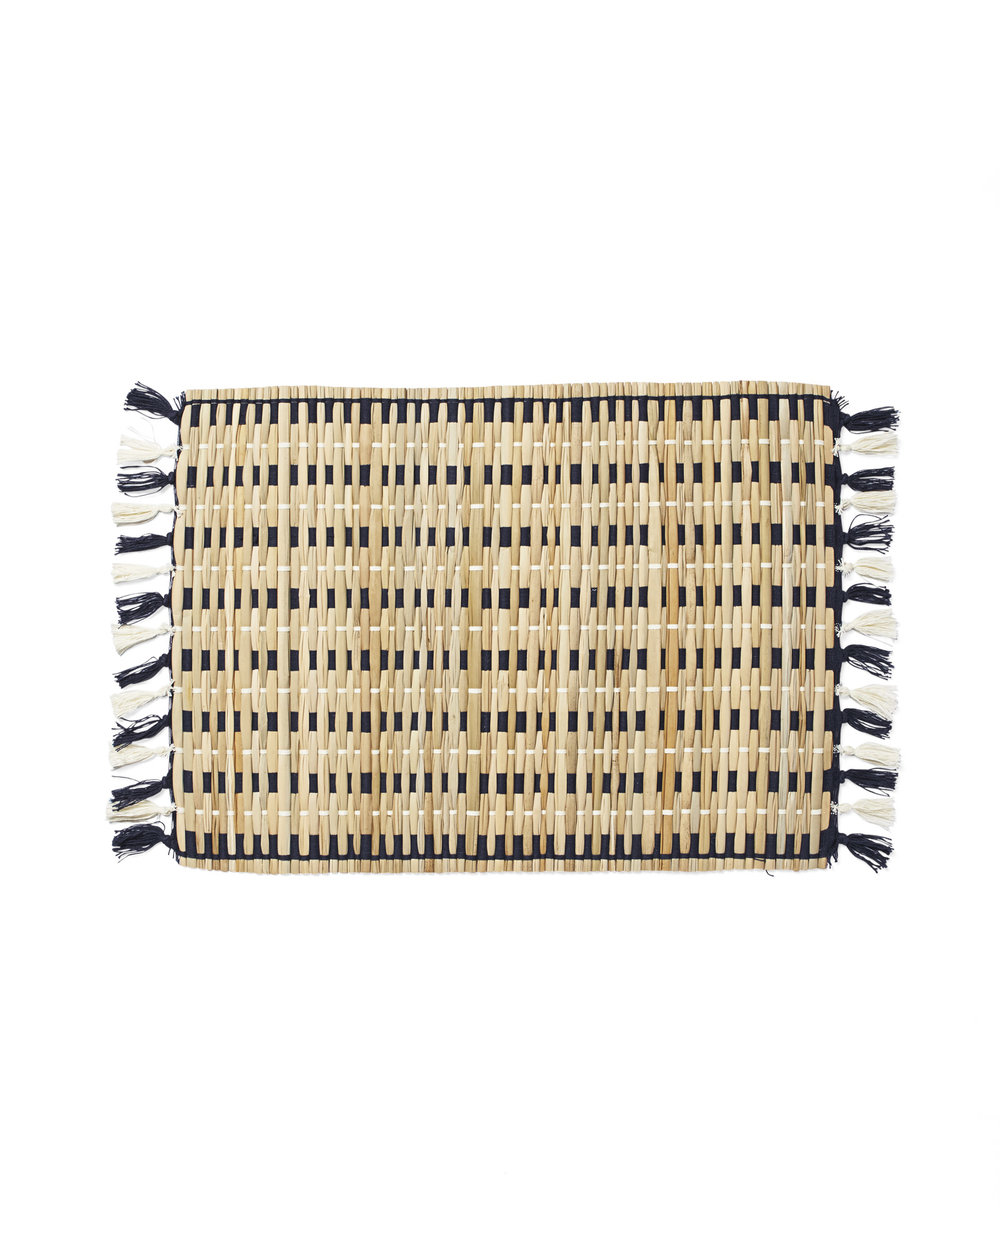 Woven_Banana_Leaf_Placemat_Navy_MV_Crop_SH.jpg